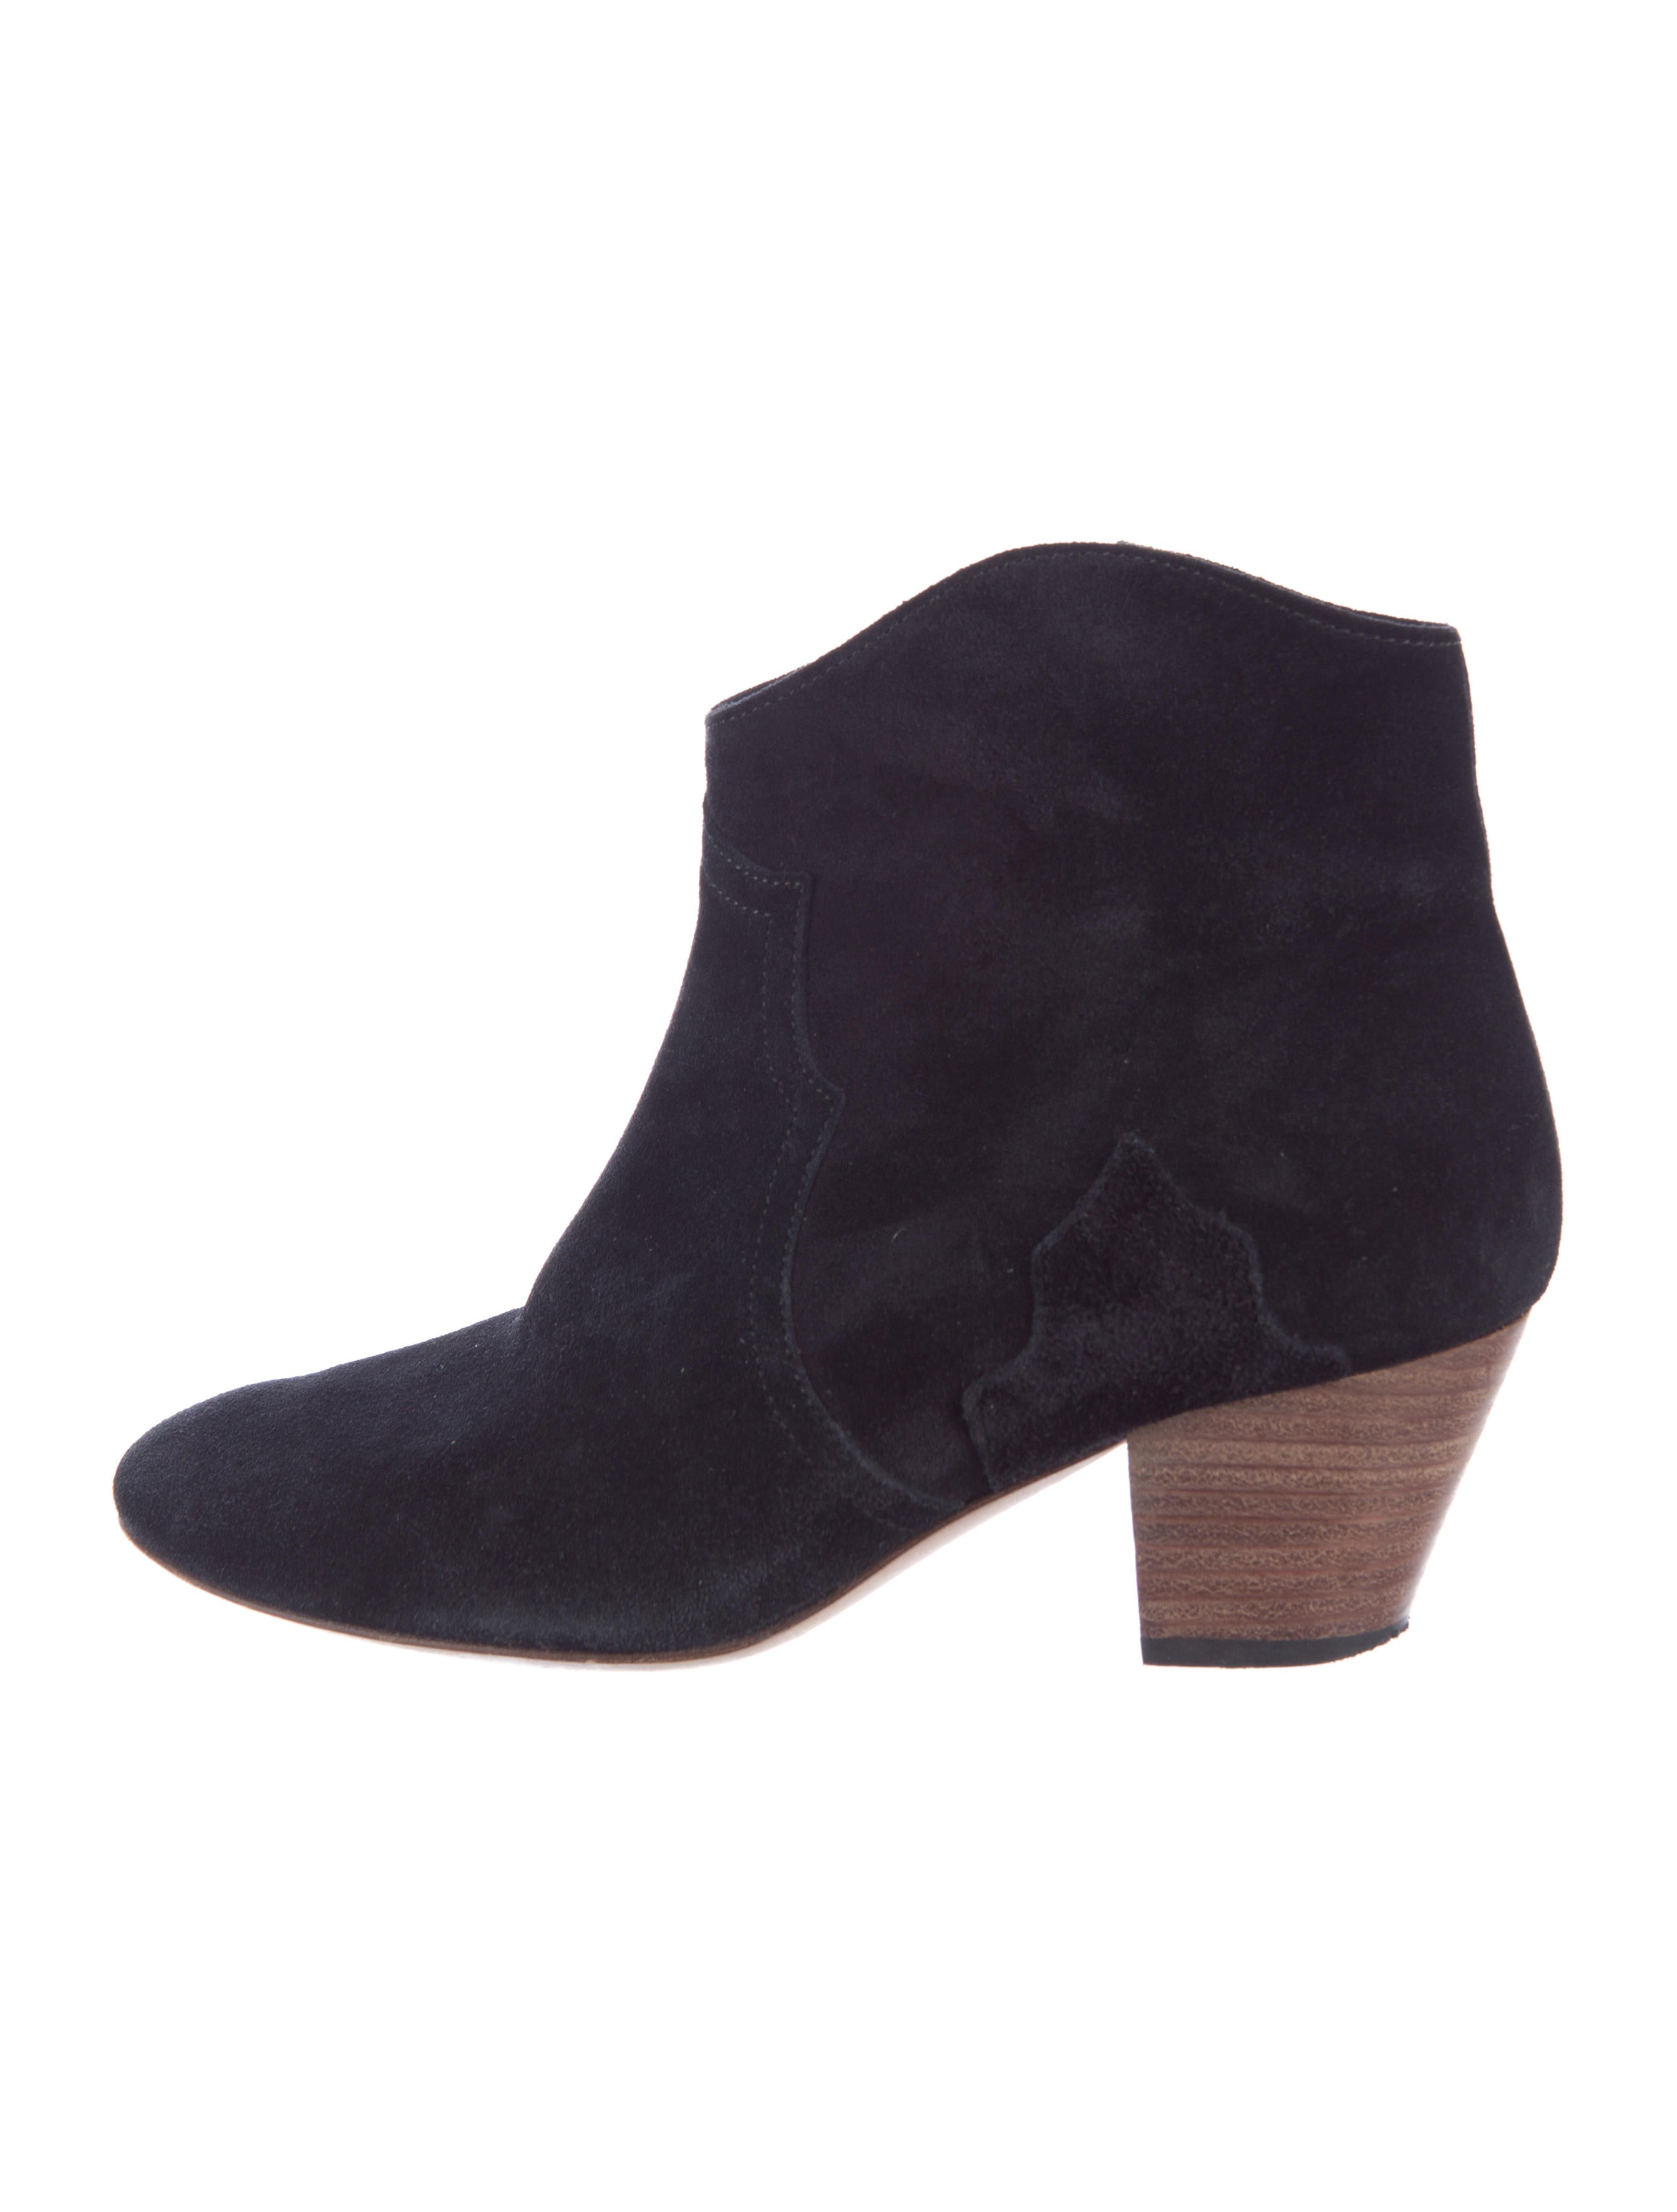 marant suede dicker ankle boots shoes isa39871